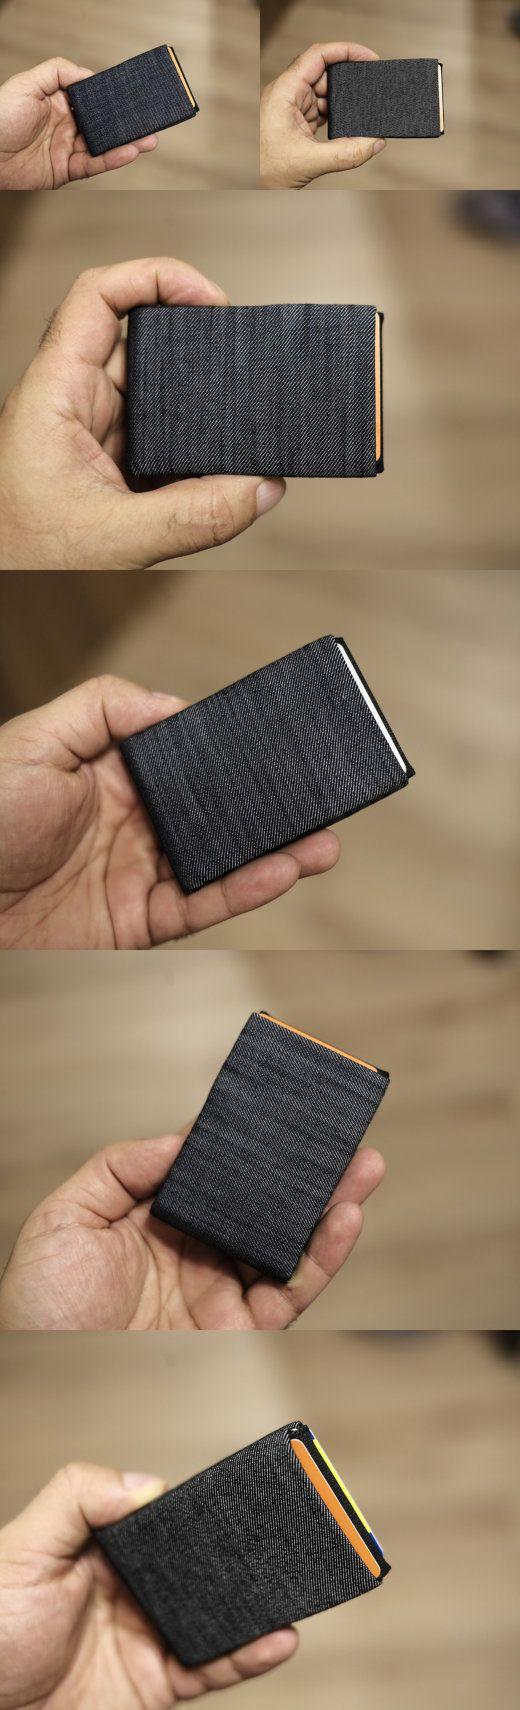 Vegan WalletRFID Wallet Minimalist WalletDenim Wallet